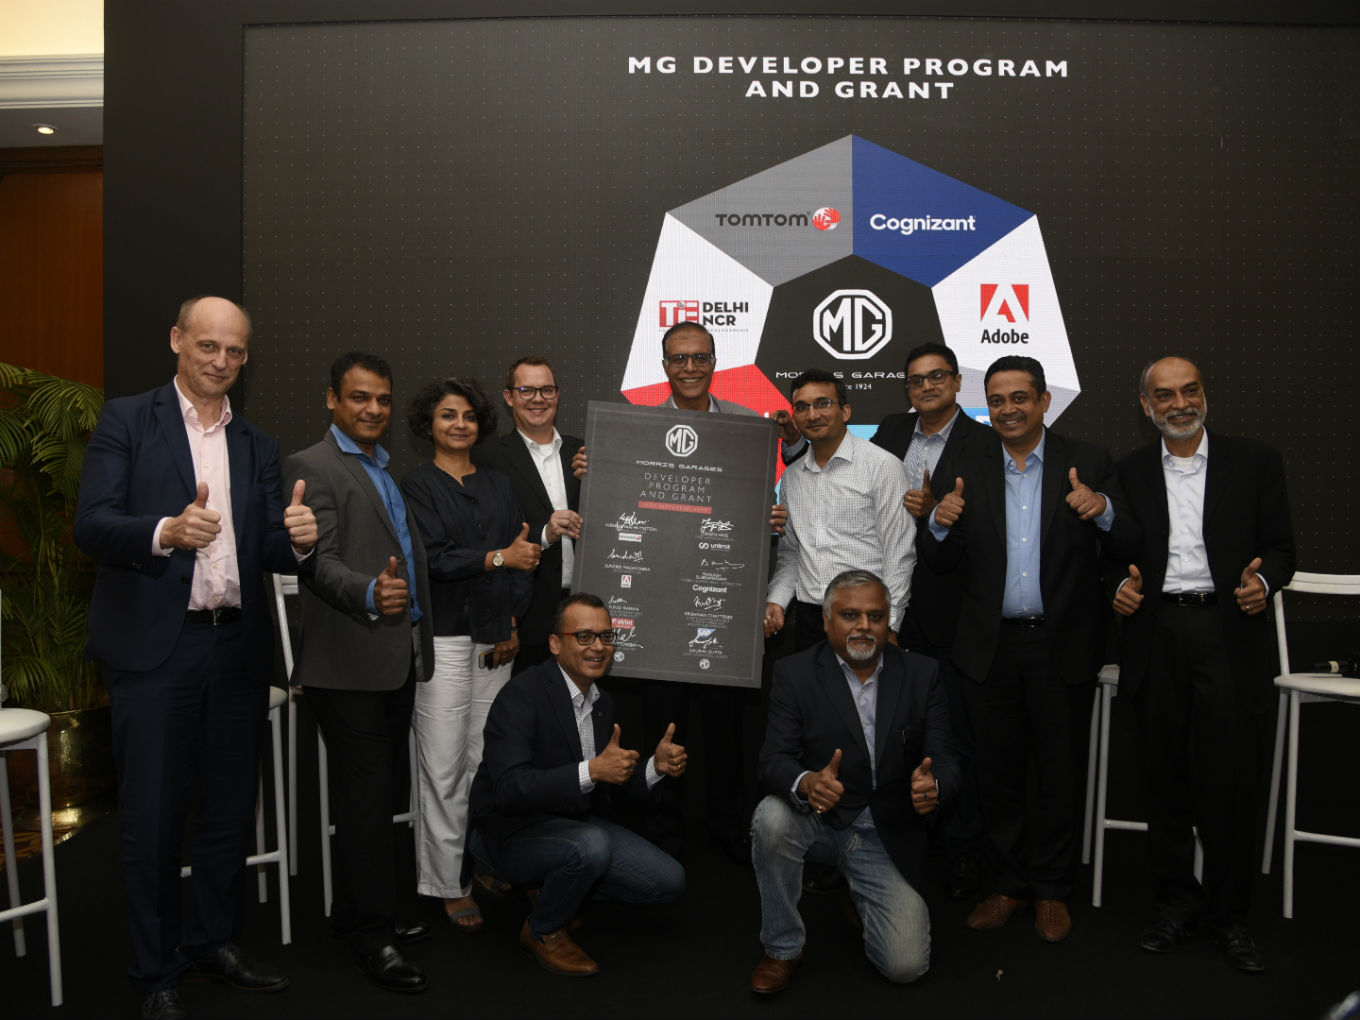 MG Motor India Launches MG Developer Programme To Support Futuristic Mobility Solutions